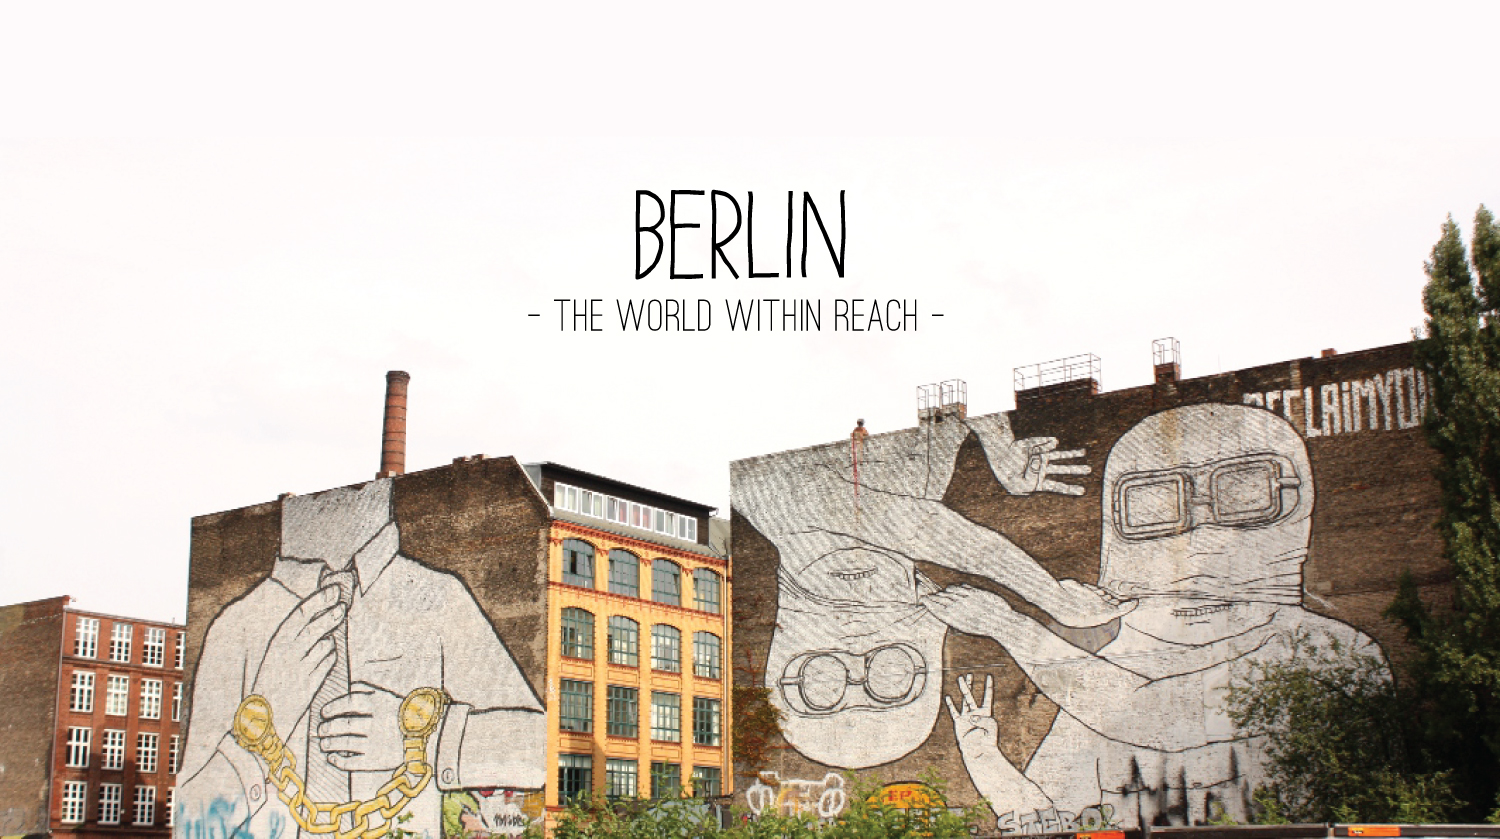 Berlin: The World Within Reach. See more at: www.superminimaps.com